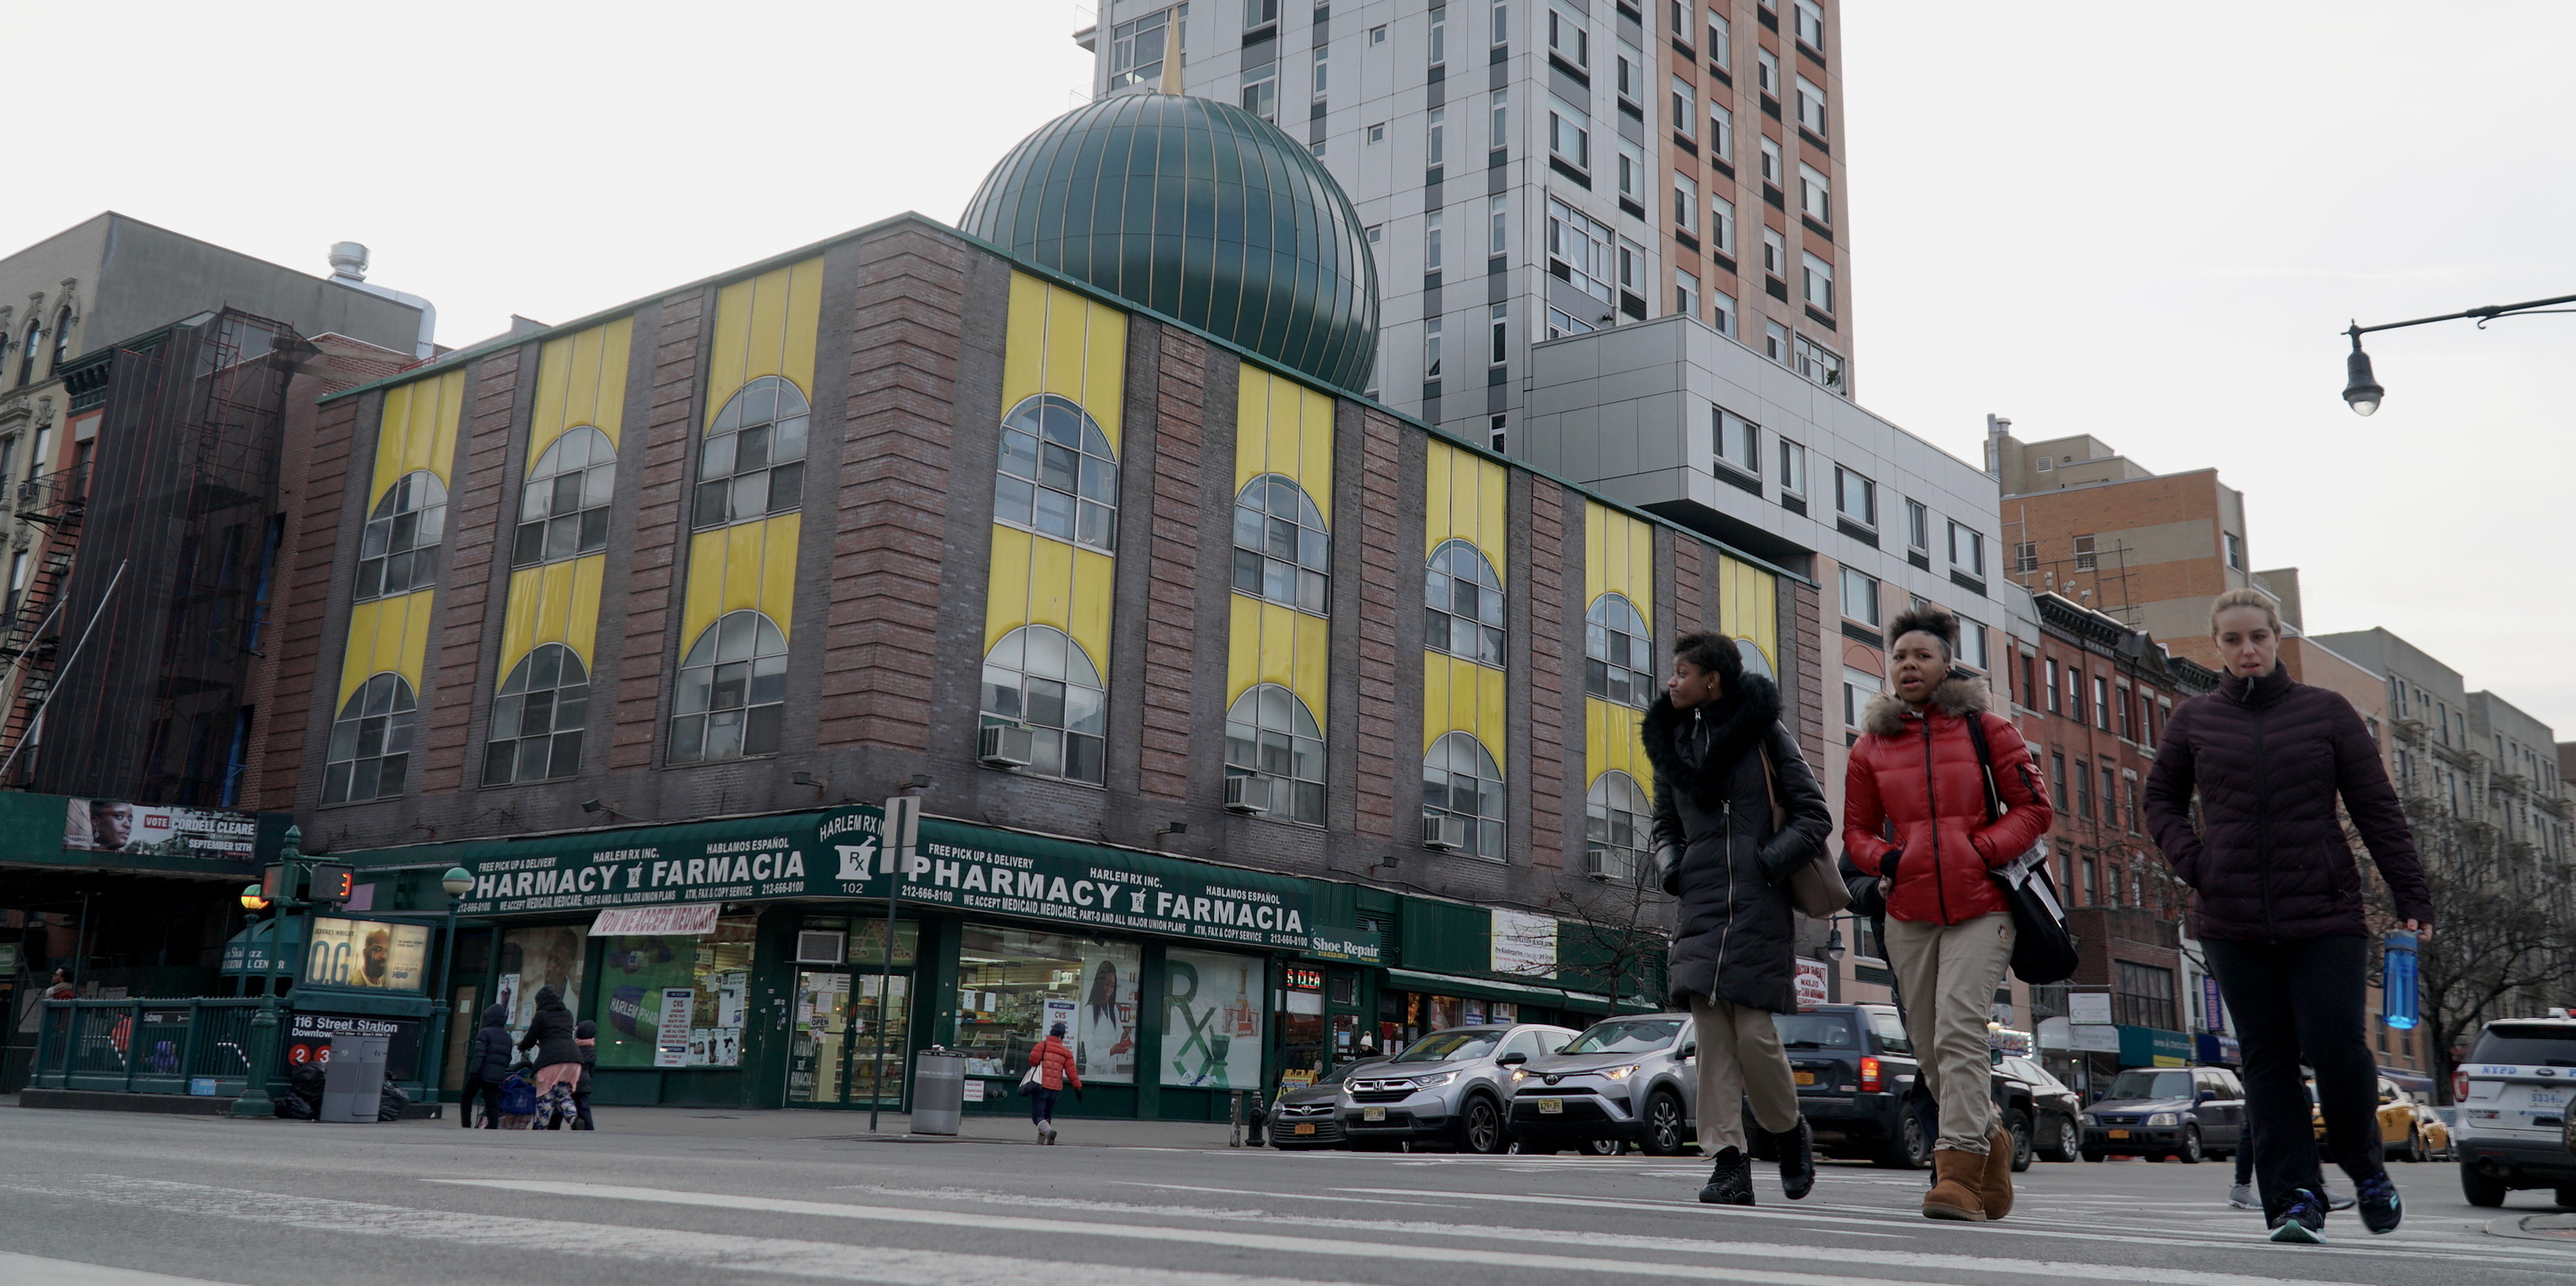 The Malcolm Shabazz Mosque is located in the heart of Harlem and home to a large West African community [Azad Essa/MEE]